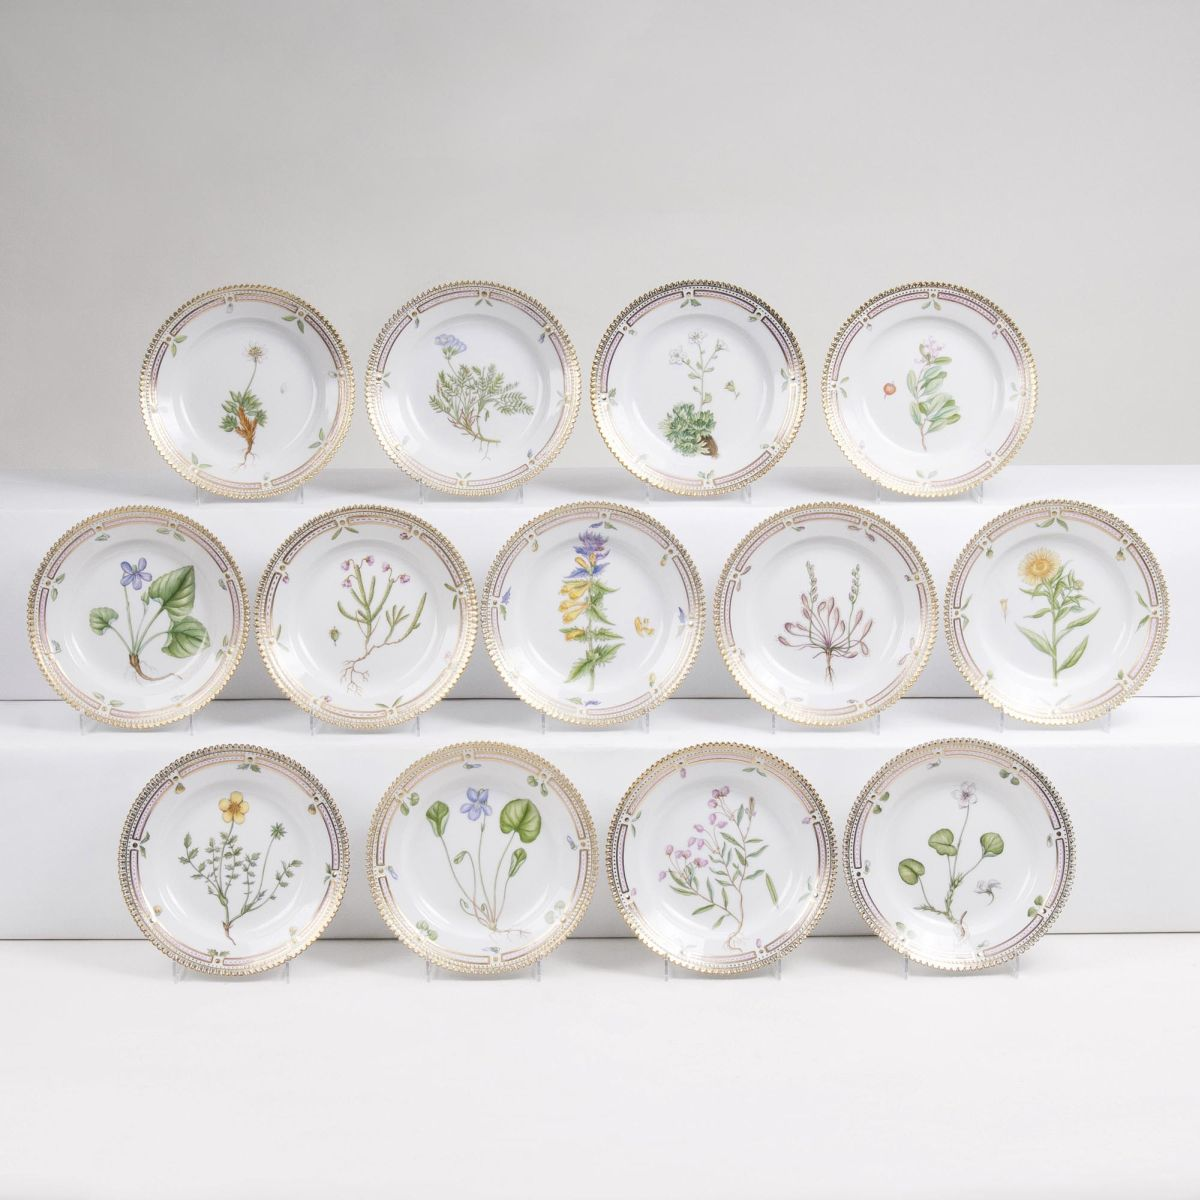 A Set of 13 small Side Dishes with Botanical Specimen